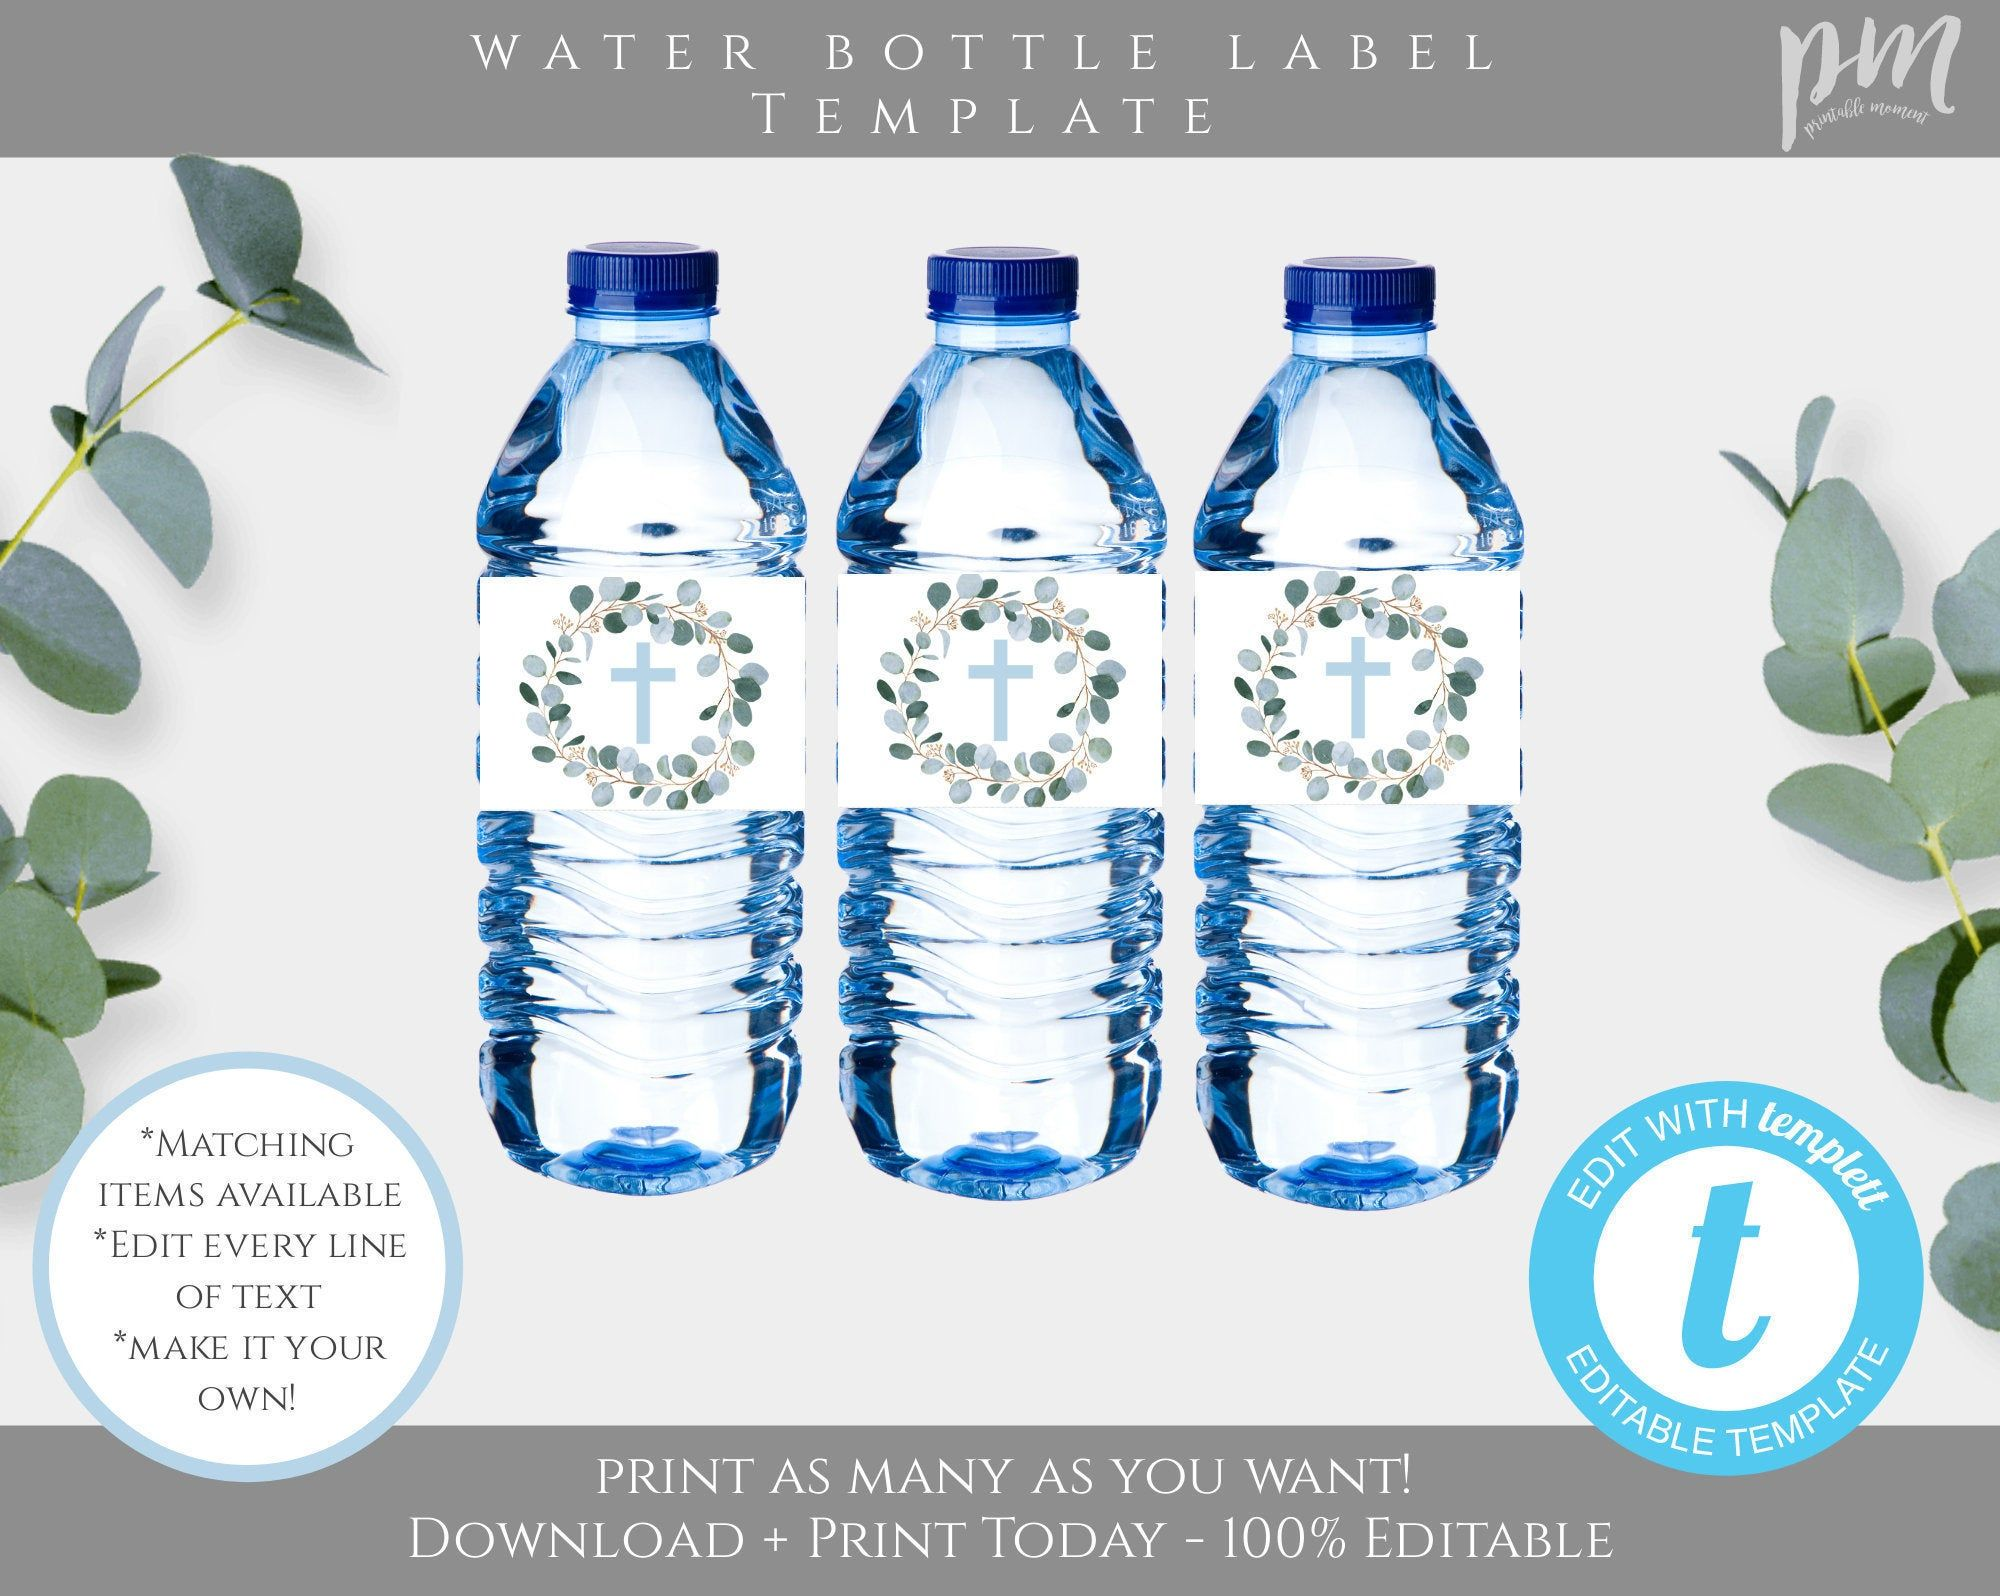 Baptism Water Bottle Label Template For Boy Printable Blue Water Bottle Label Cross Water Bottle Label Greenery Downloadable Template Bap2 In 2021 Bottle Label Template Water Bottle Labels Template Water Bottle Labels Mini water bottle label template